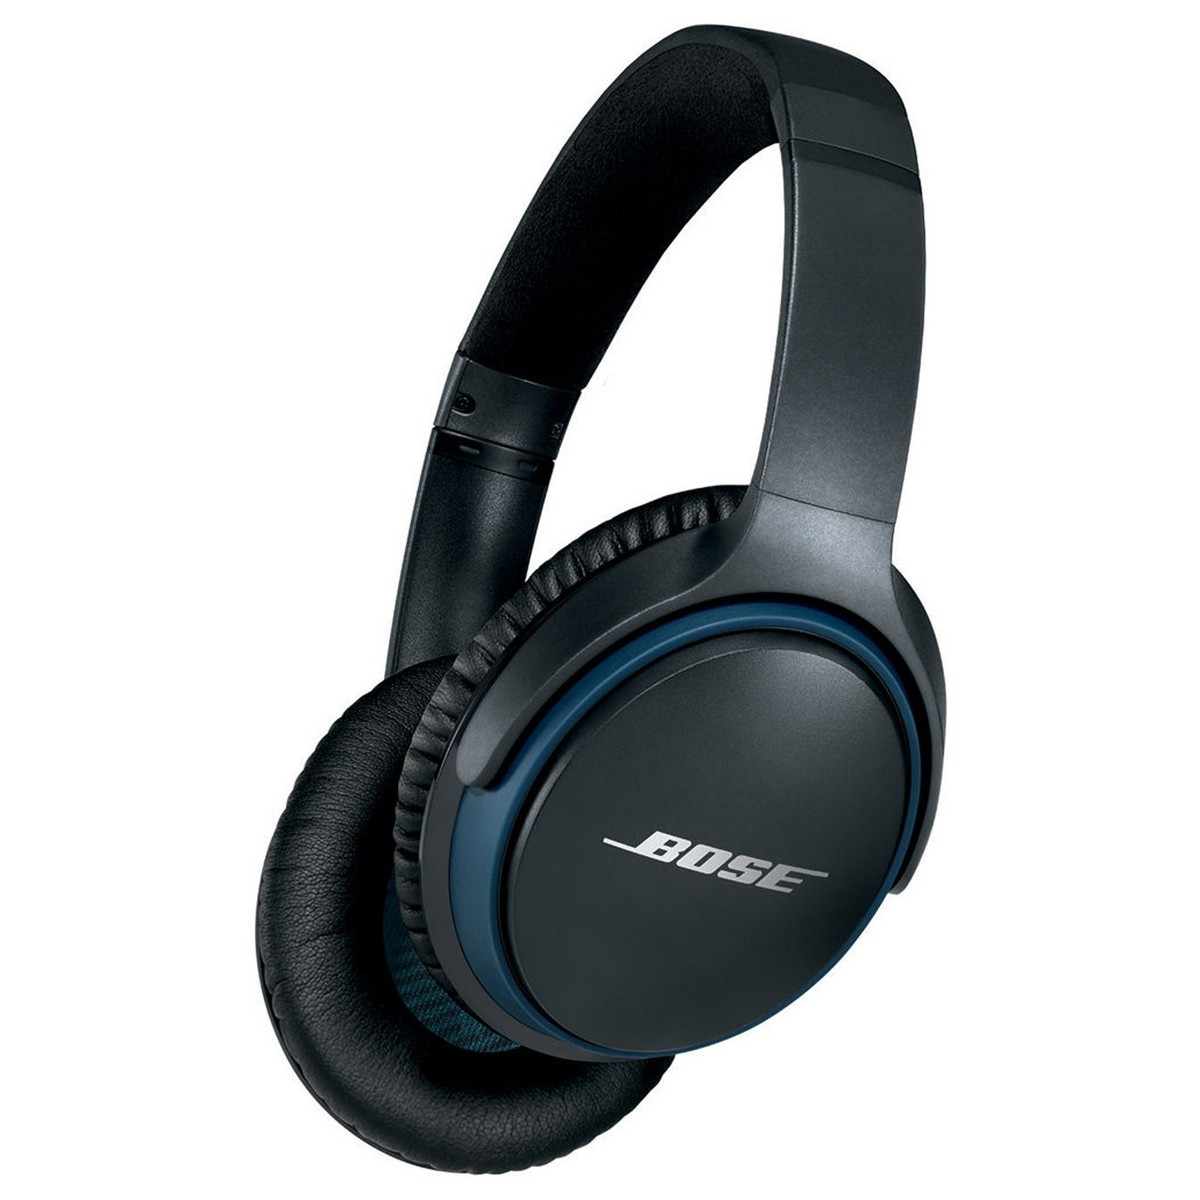 bose soundlink around ear bluetooth headphones black gear4music. Black Bedroom Furniture Sets. Home Design Ideas